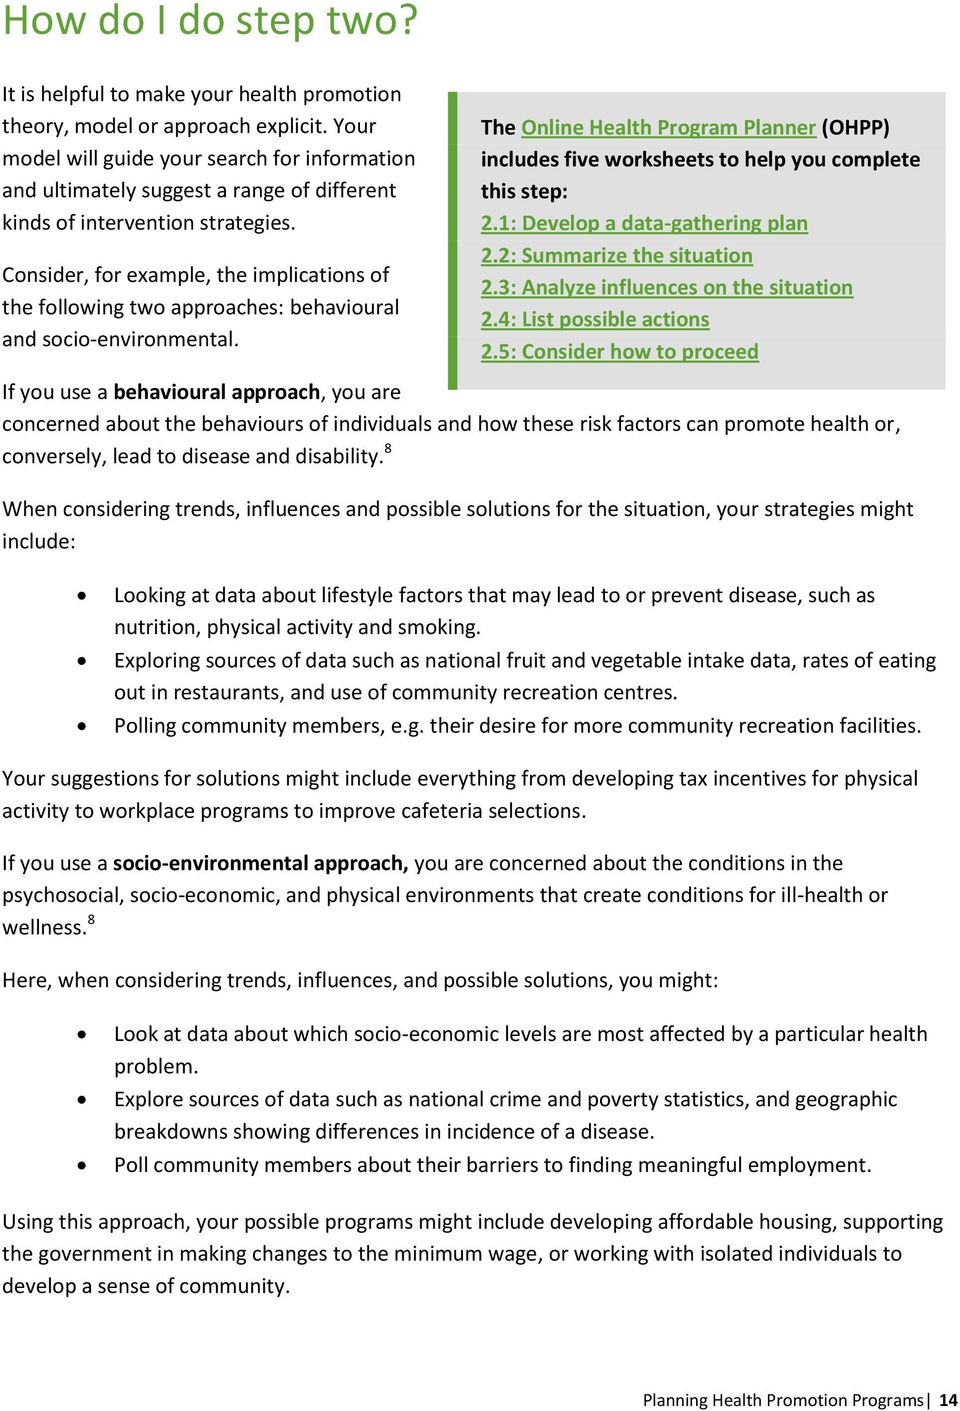 Planning health promotion programs: introductory workbook - PDF